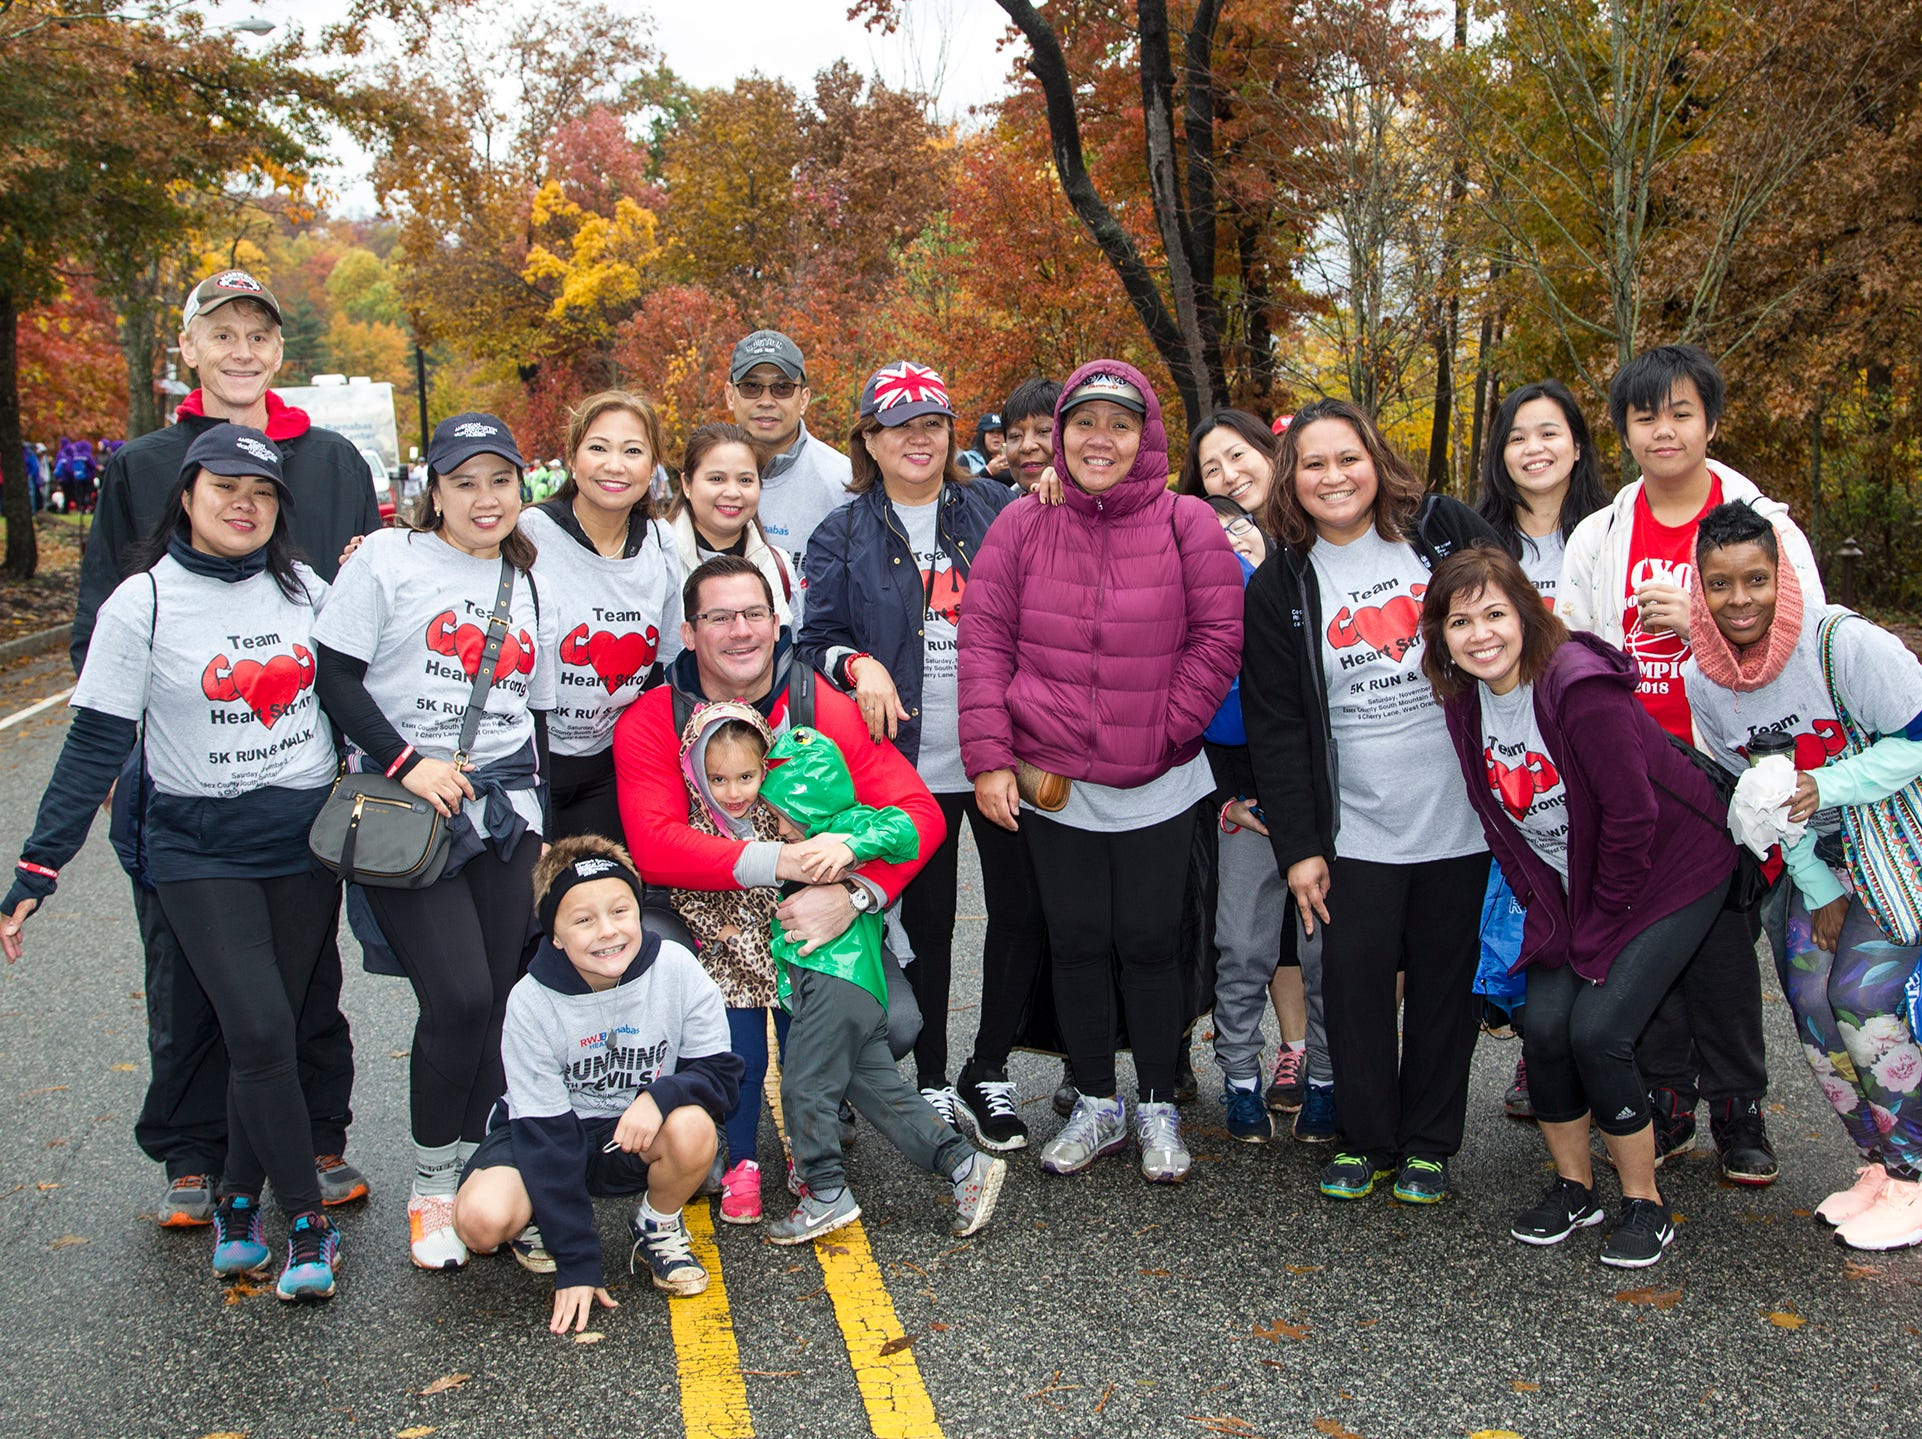 Team Heart Strike. RWJBarnabas Health Running with the Devils 5K Run and Family Fun Walk at South Mountain Recreation in West Orange. 10/03/2018